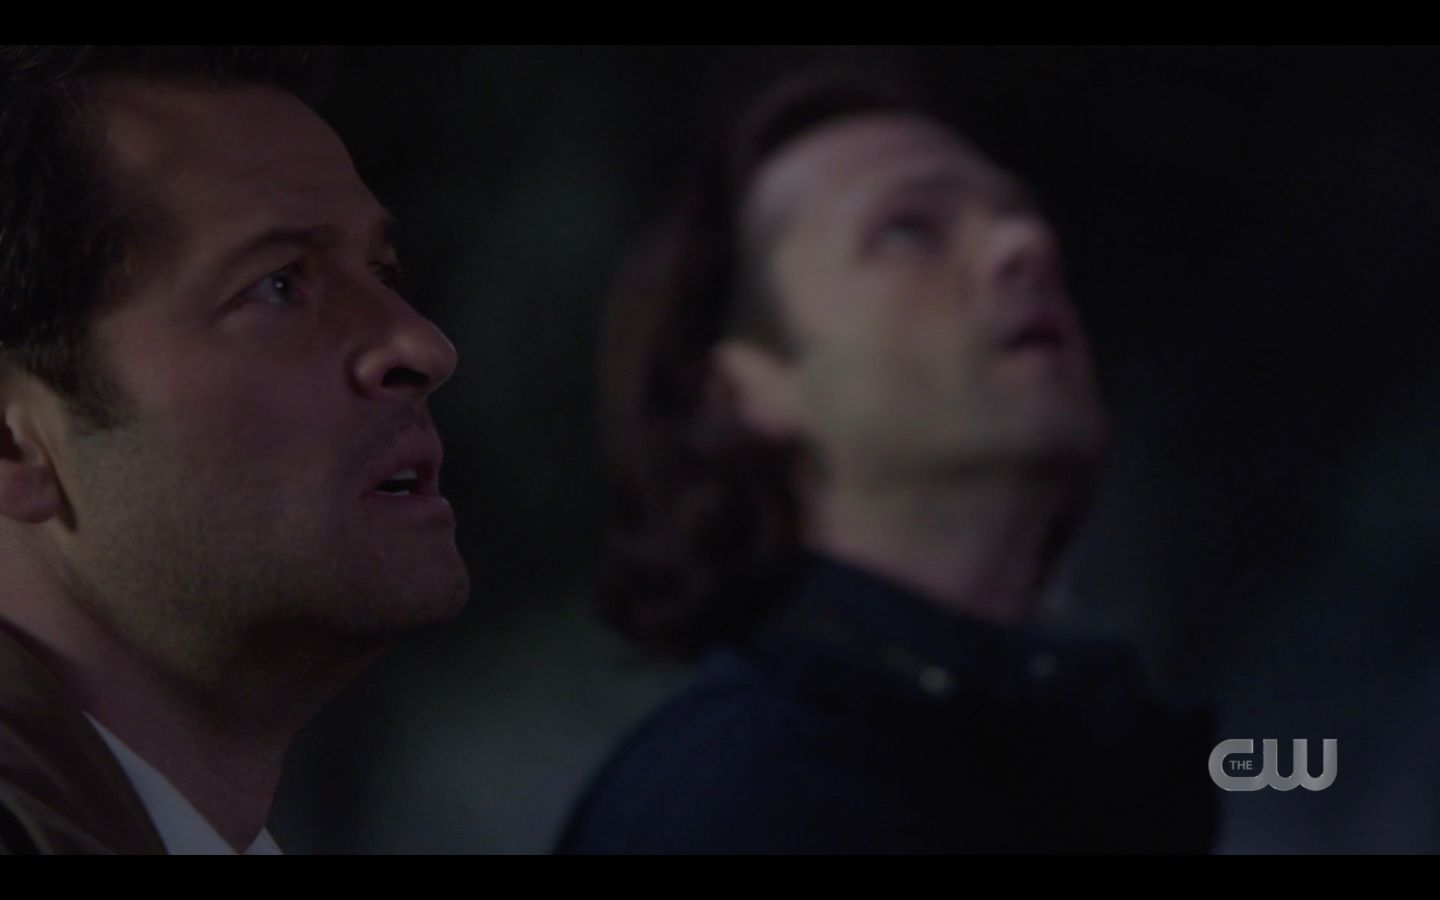 Sam Winchester Cas watch souls they killed coming back SPN 14.20